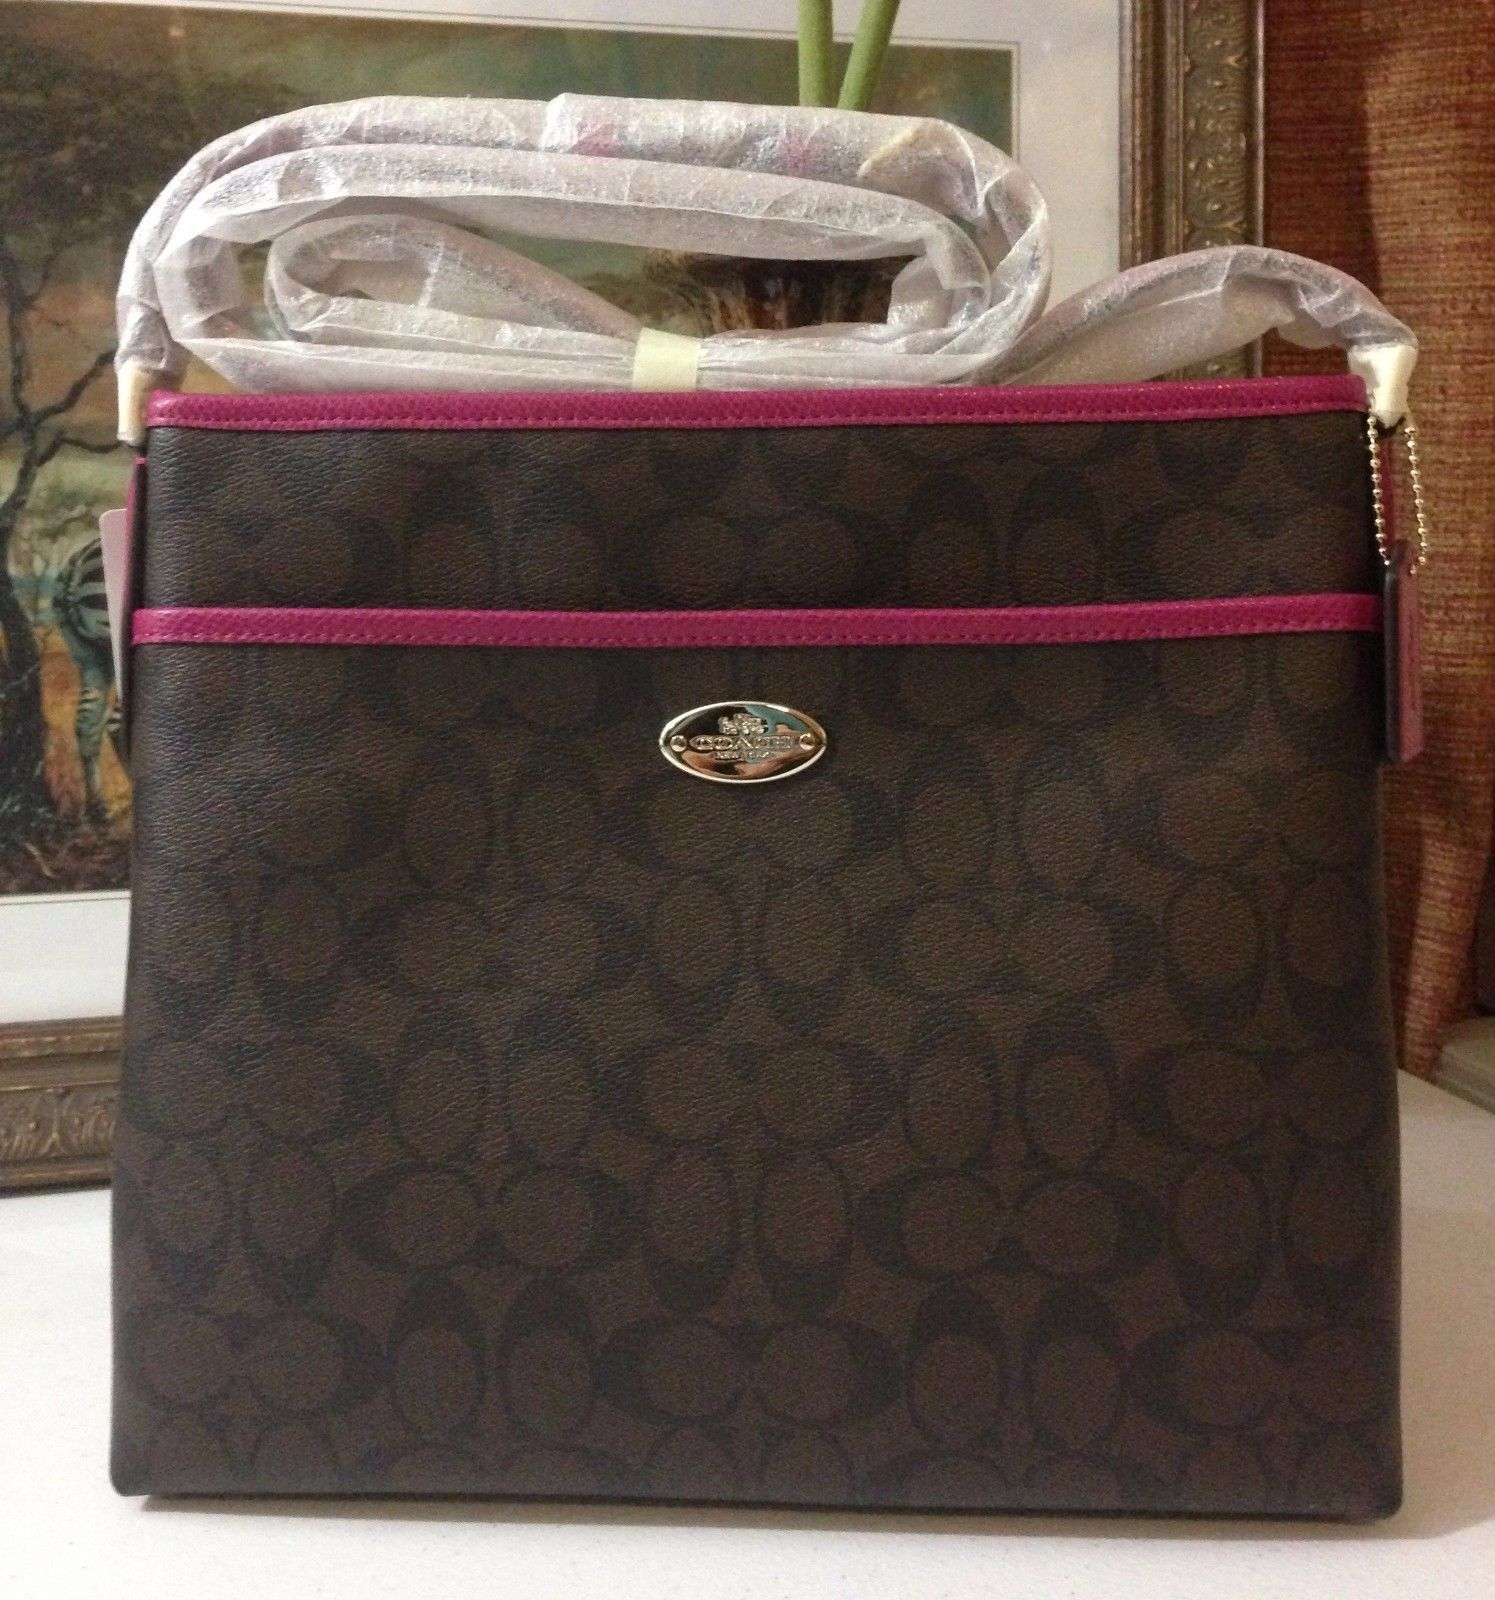 NWT COACH SIGNATURE FILE BAG IM/BROWN/CRANBERRY F34938